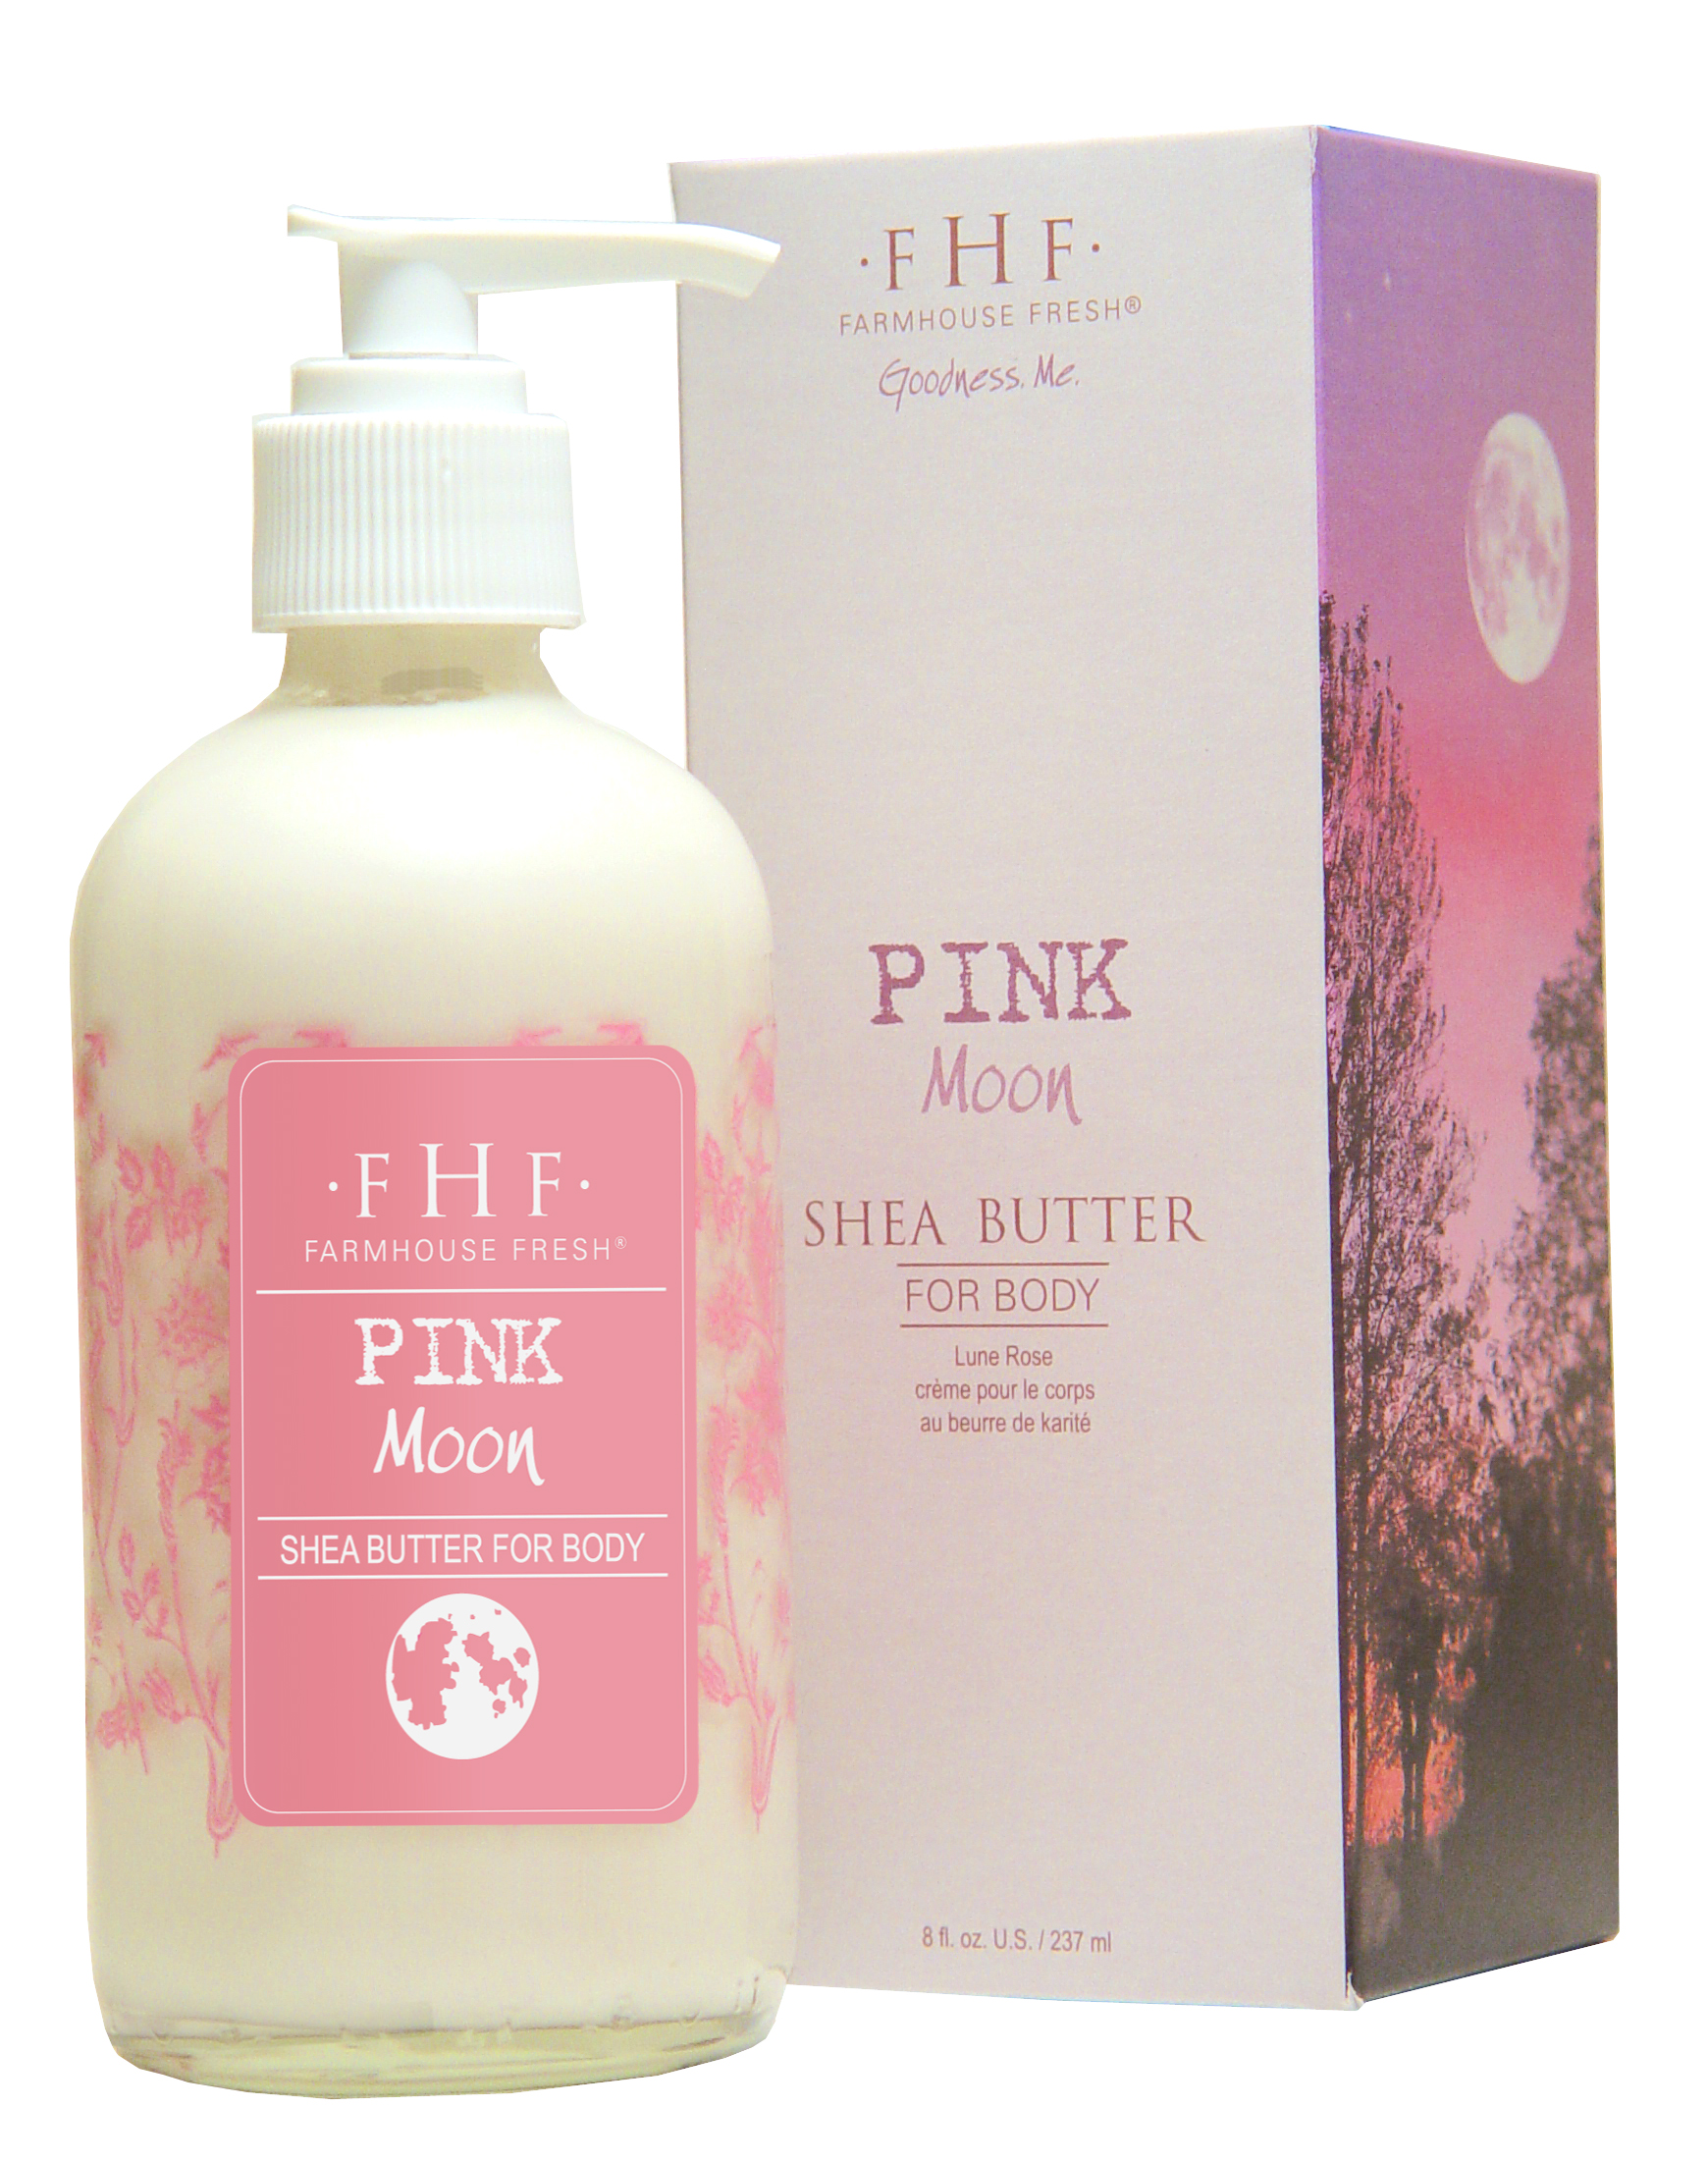 The skies the limit with a blend of fragrances such as delicate spun sugar, licorice blossom and raspberry enriched in the 99.6 percent natural shea butter. Representing the company's first ever partnership with the National Breast Cancer Foundation, Inc., the brand will donate five percent of all wholesale proceeds and ten percent of the proceeds purchased online to the foundation.